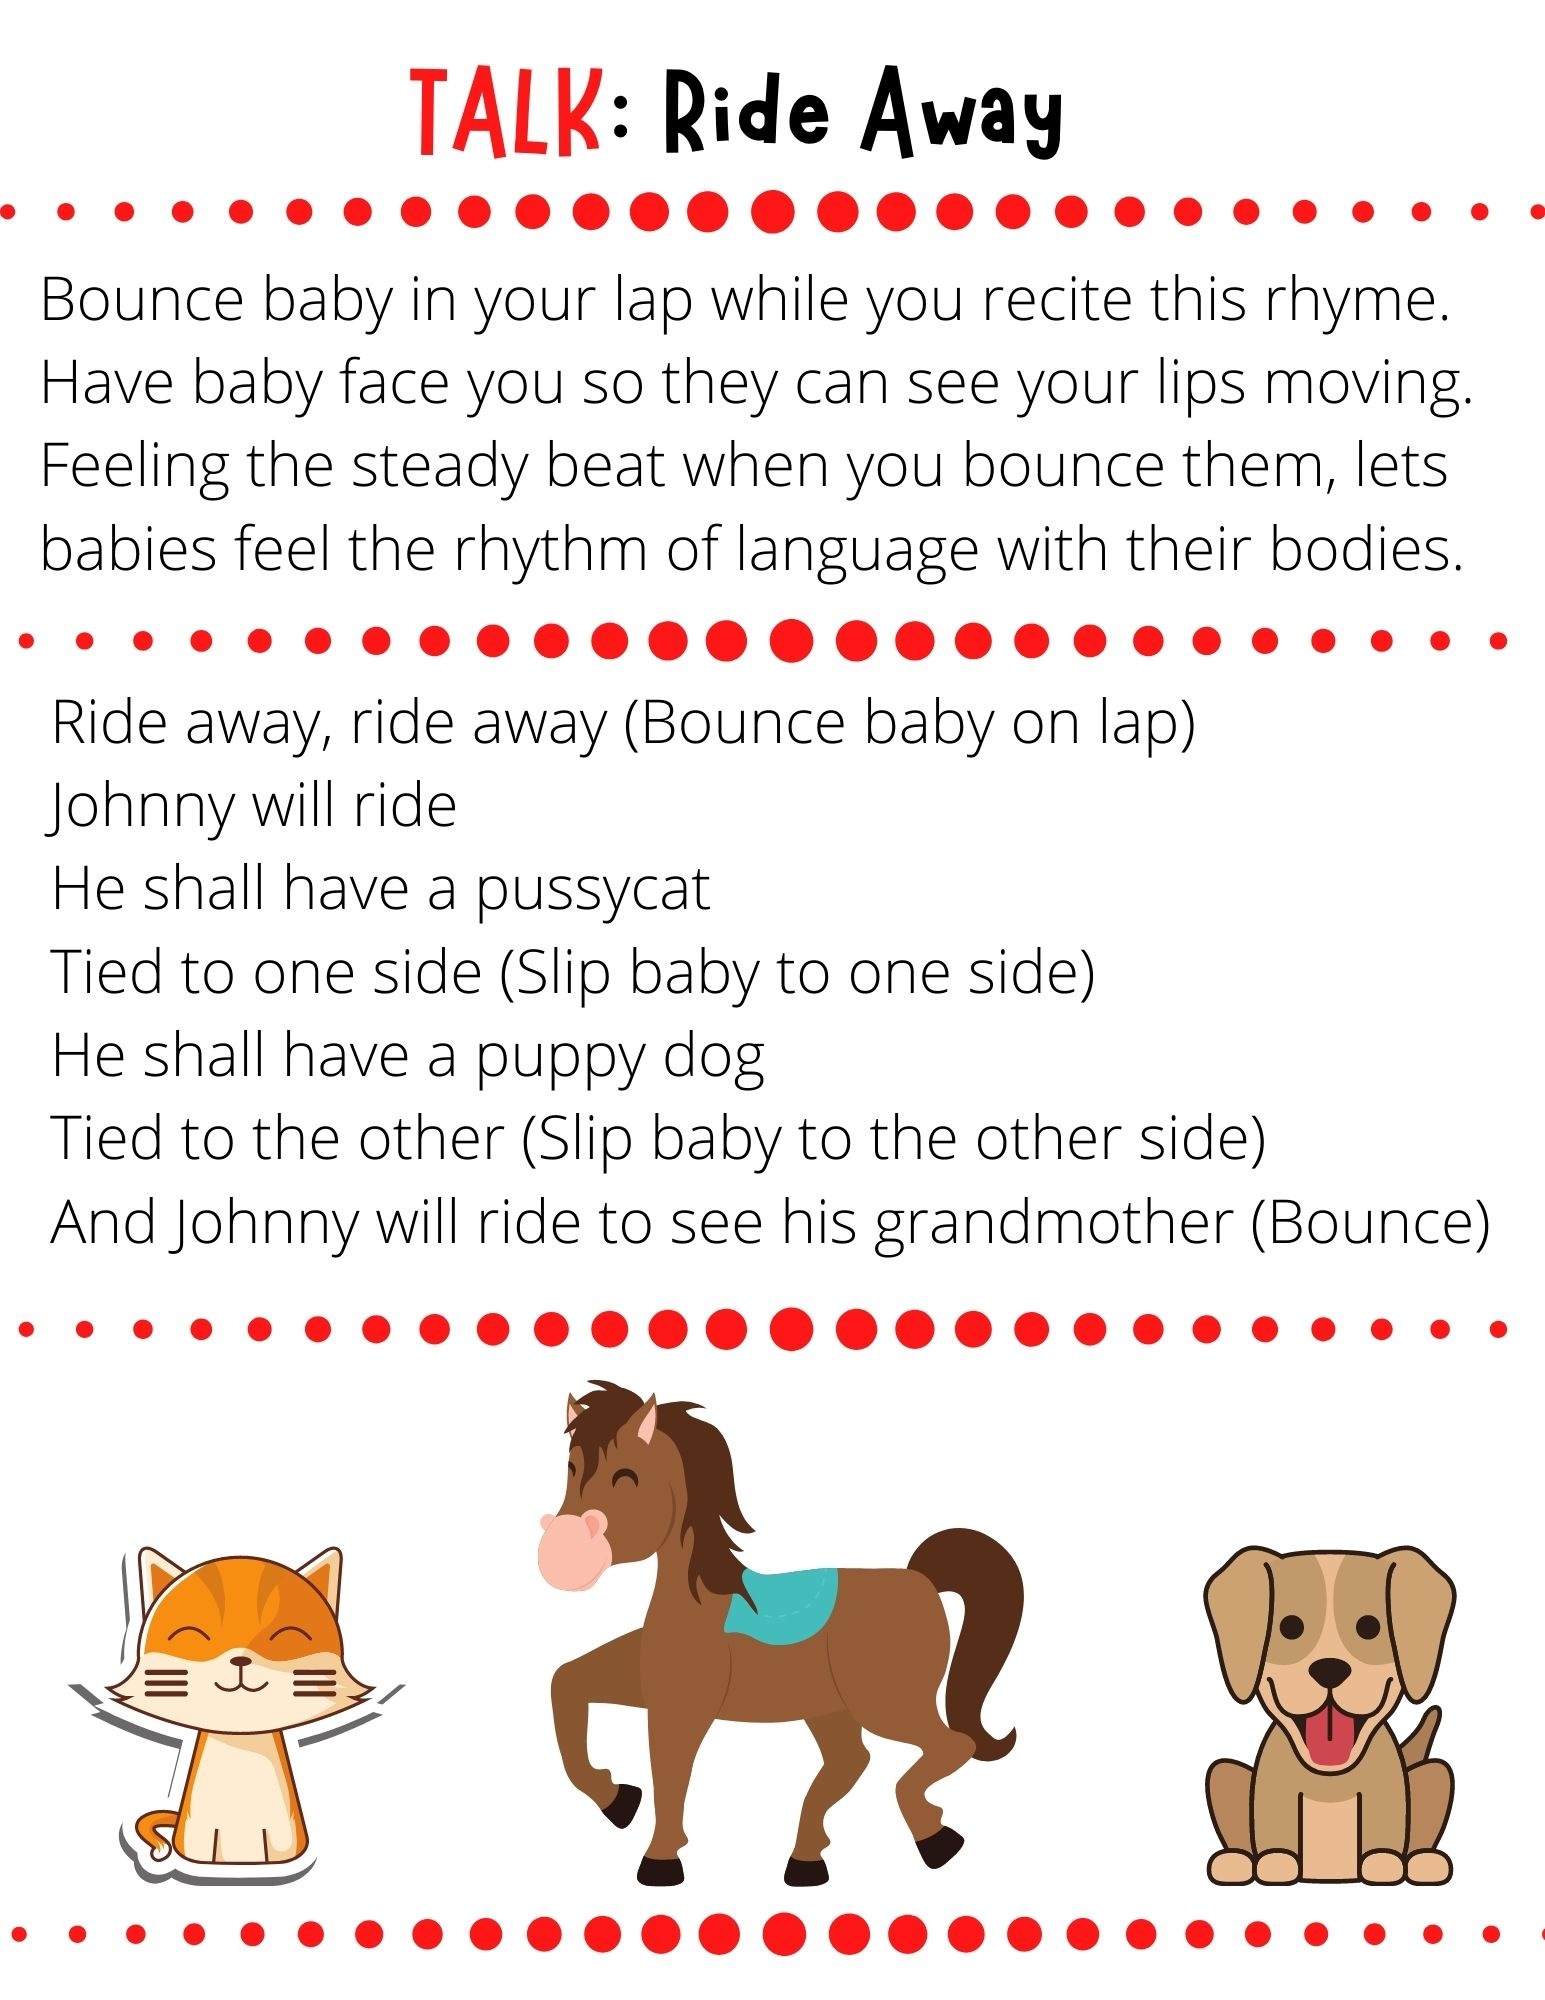 Ride away, ride away (Bounce baby on lap) Johnny will ride He shall have a pussycat Tied to one side (Slip baby to one side) He shall have a puppy dog Tied to the other (Slip baby to the other side) And Johnny will ride to see his grandmother (Bounce)